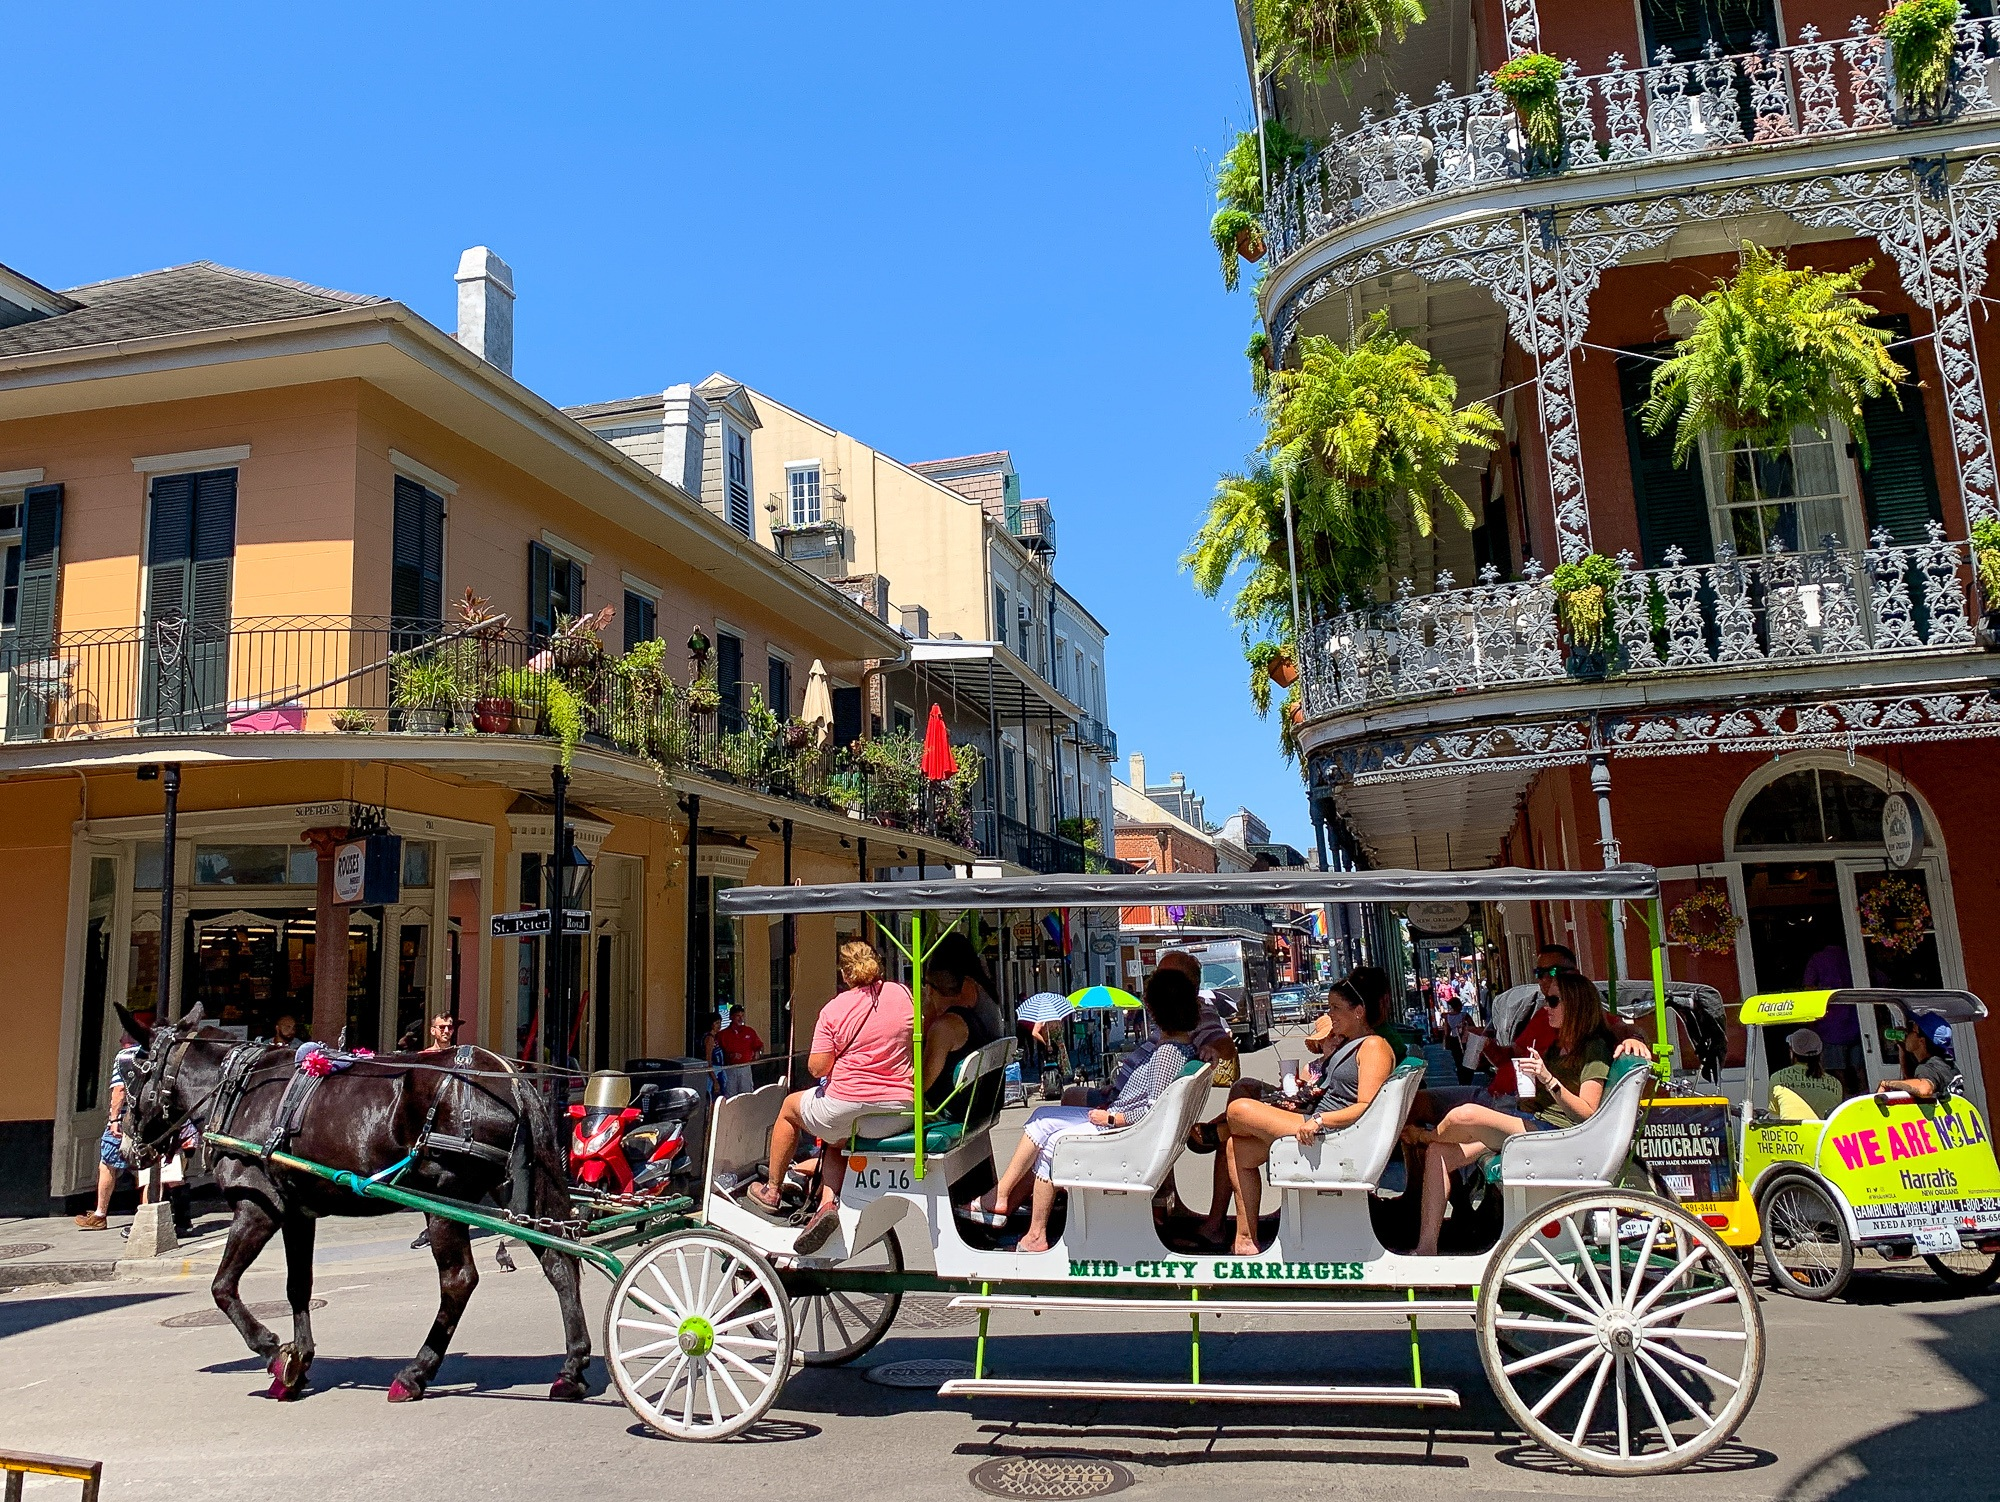 Mule-drawn carriage ride in the French Quarter in New Orleans, Louisiana